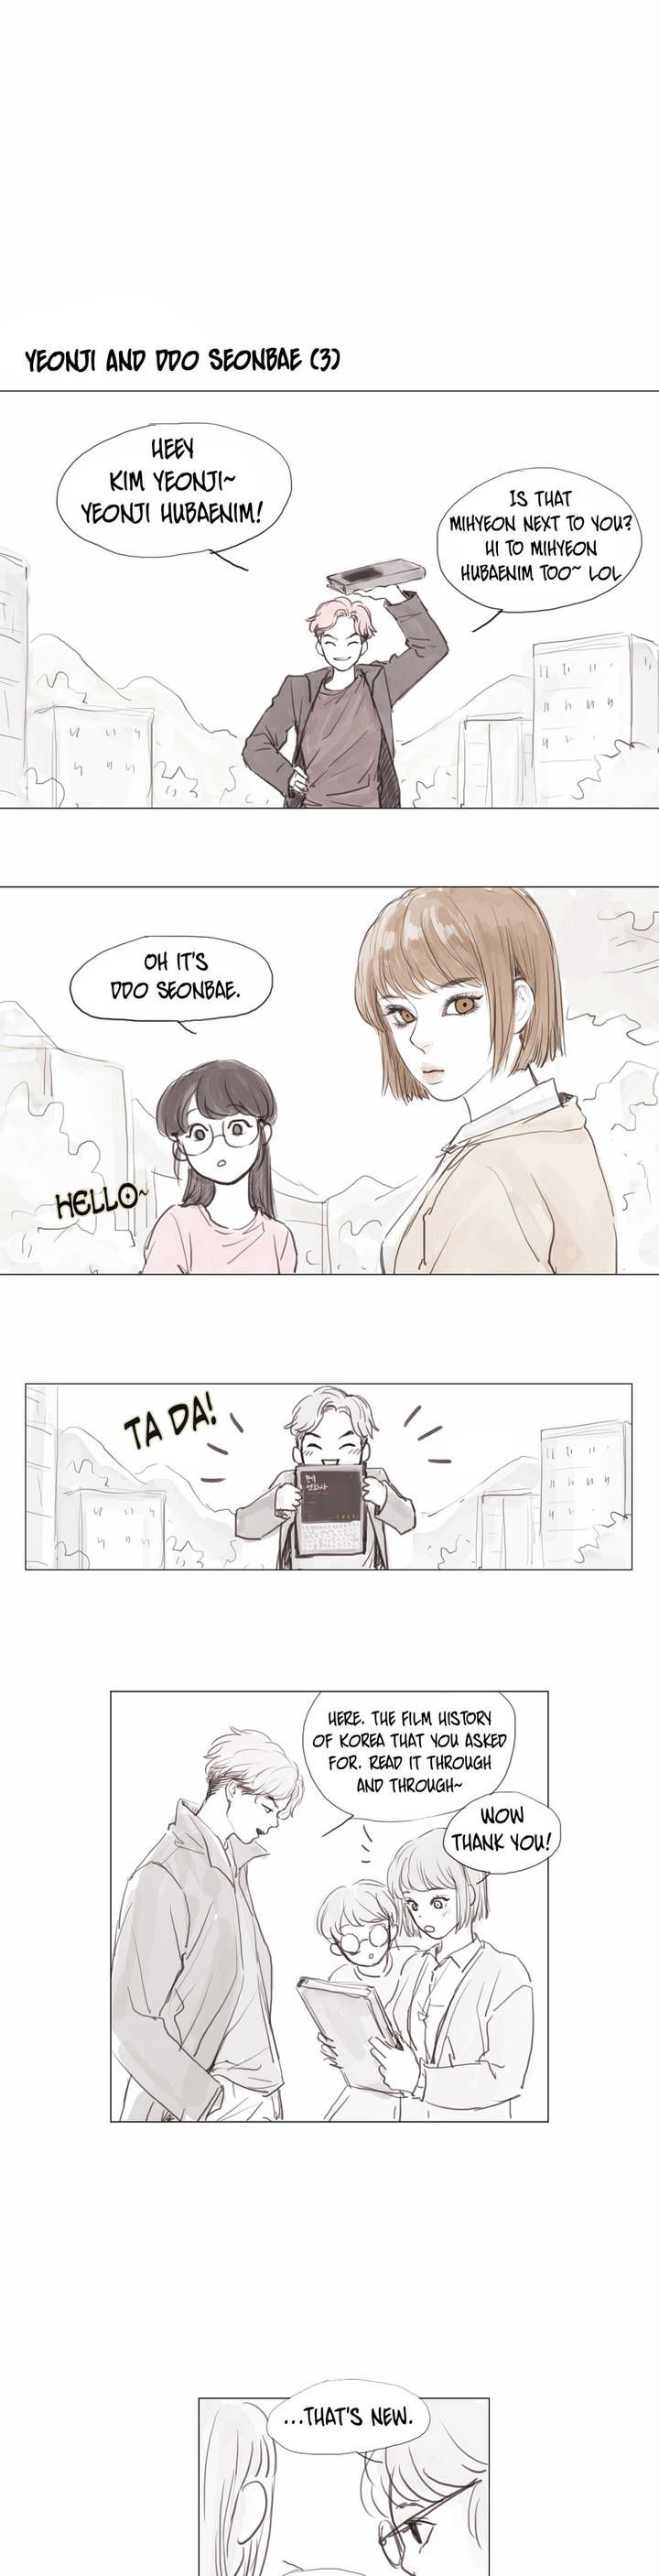 Strawberry And Milk Tea - Chapter 4